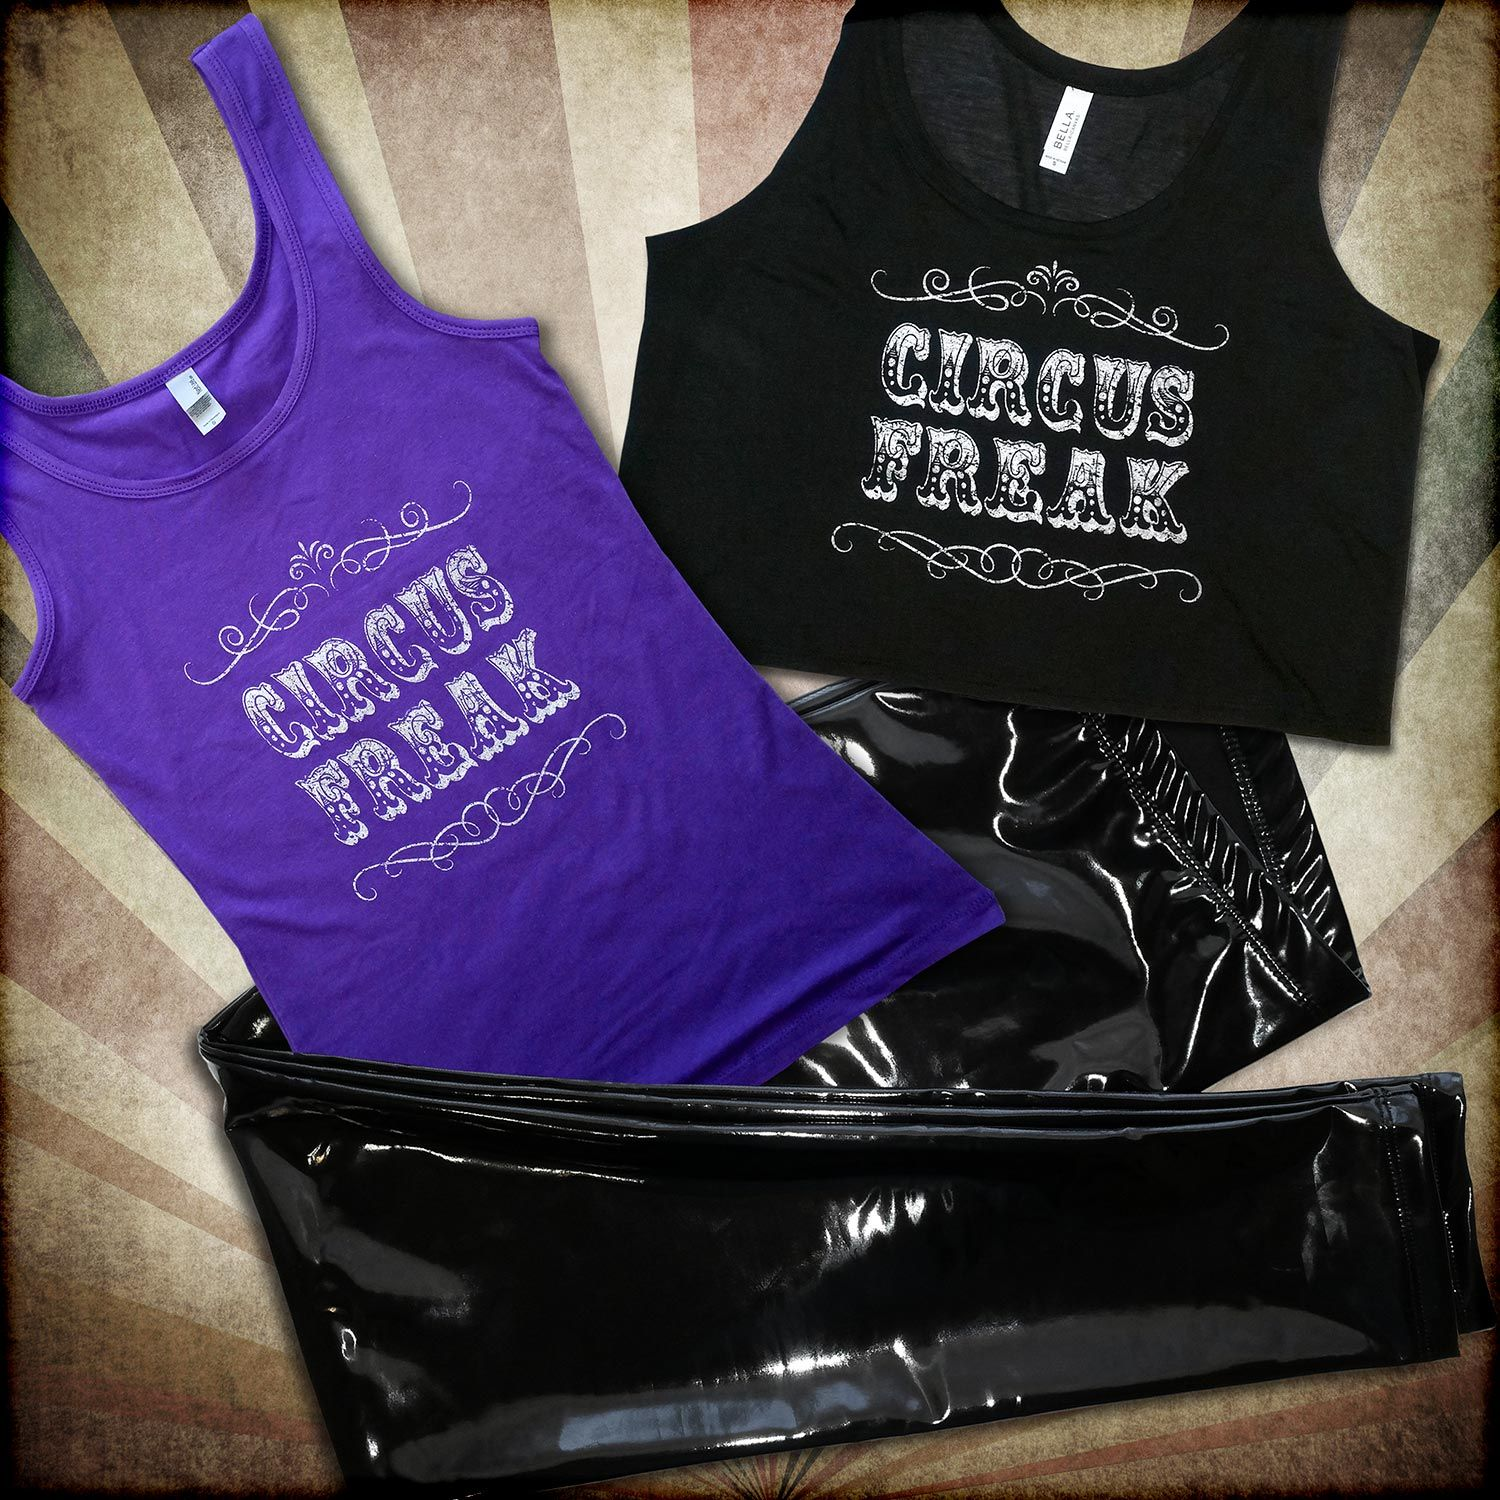 760068ce737e8 Cleo The Hurricane s brand new Heroine Liquid Vinyl Leggings -- paired with  our very own Circus Freak tank top and Circus Freak crop top.